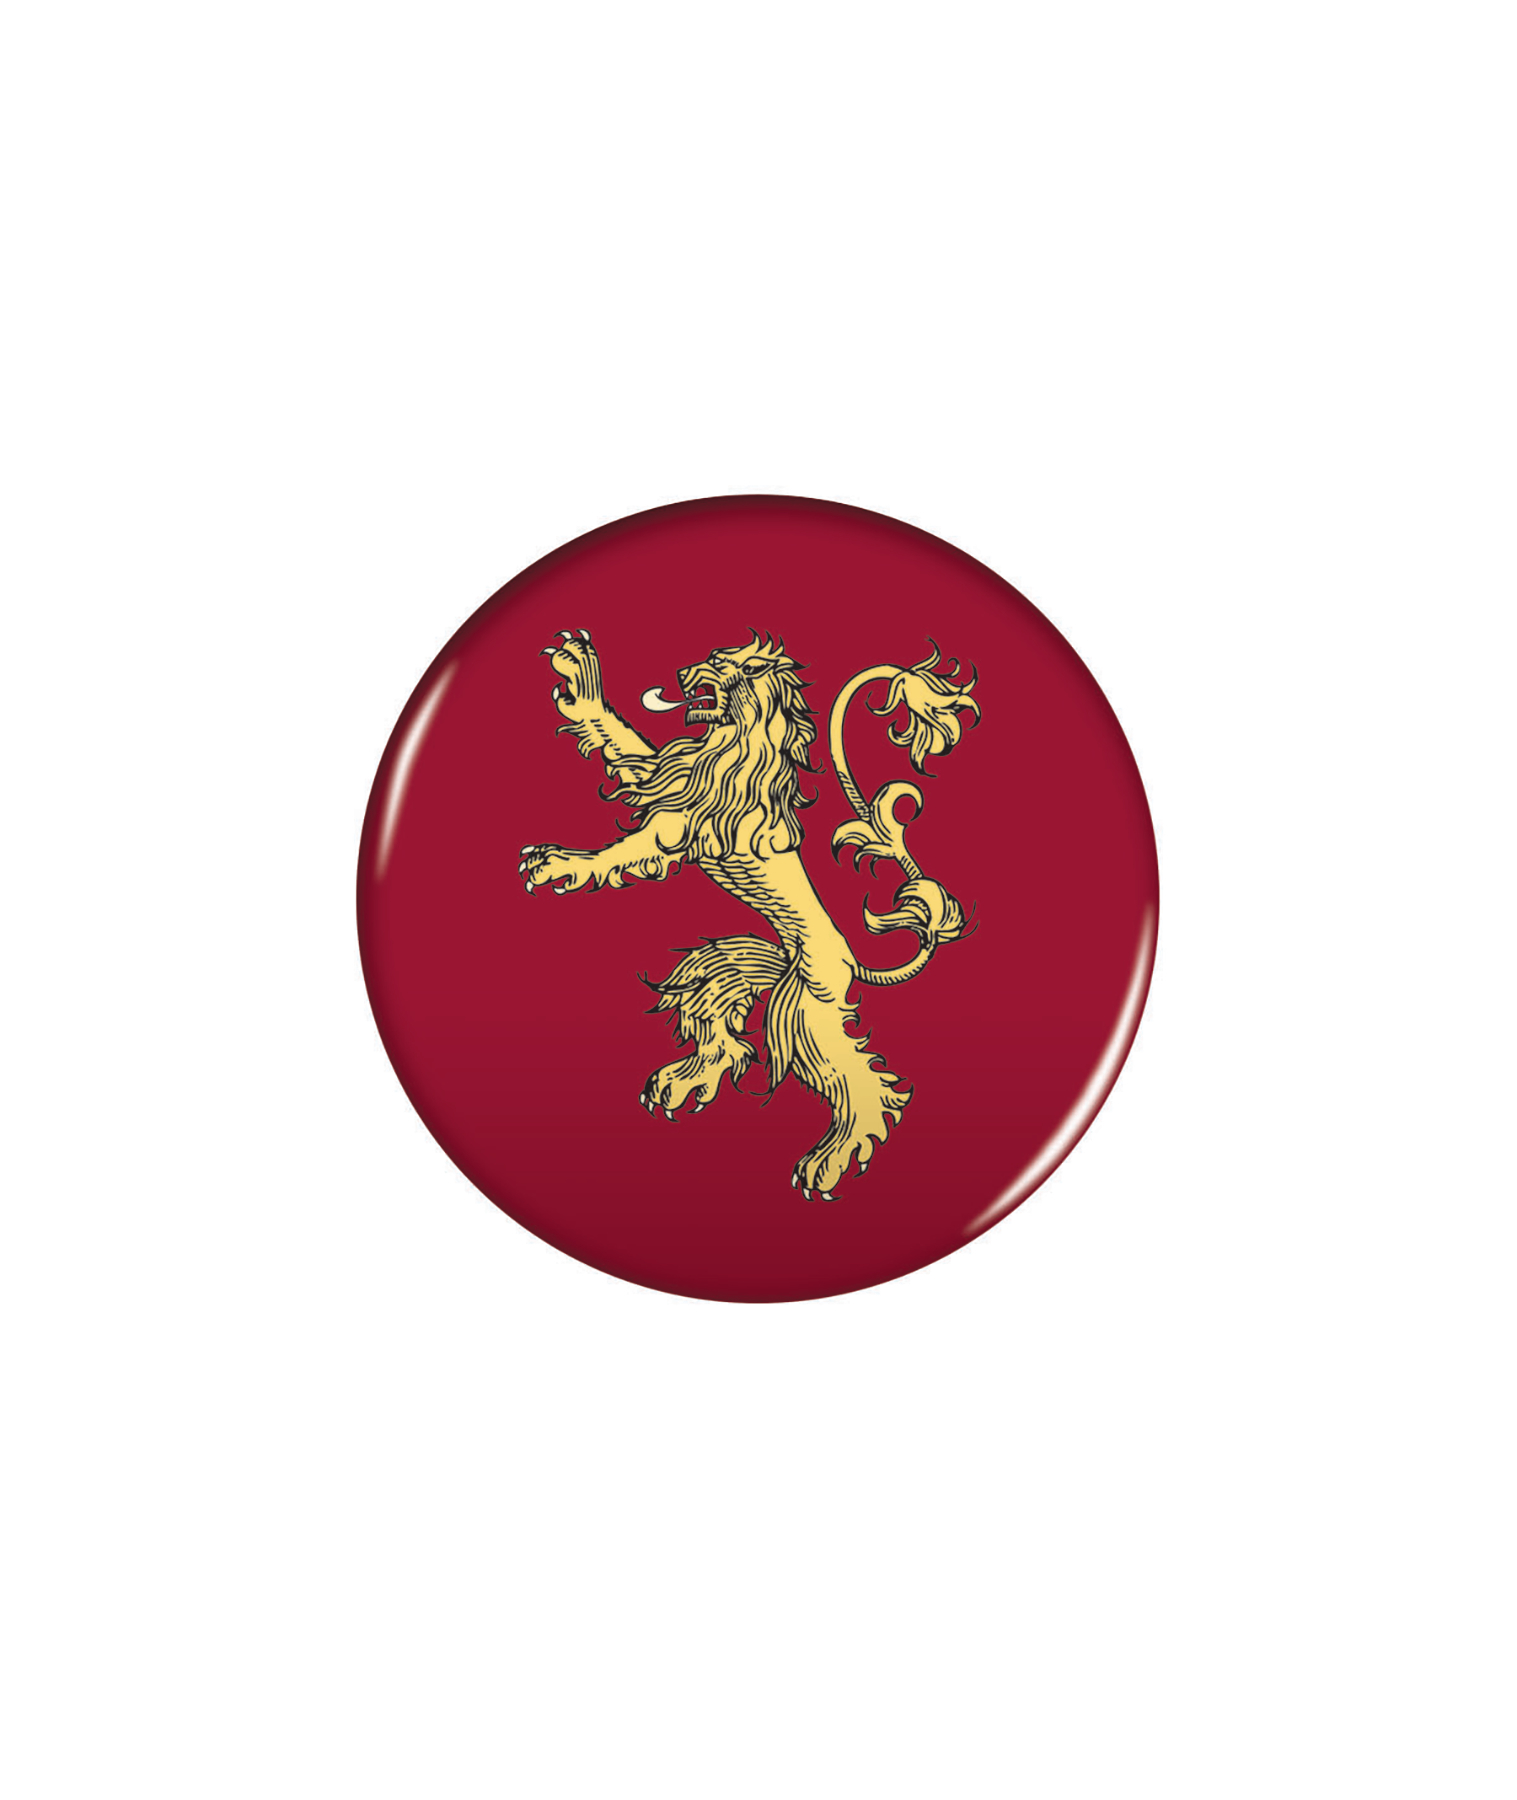 GAME OF THRONES MAGNET 2.25 IN LANNISTER